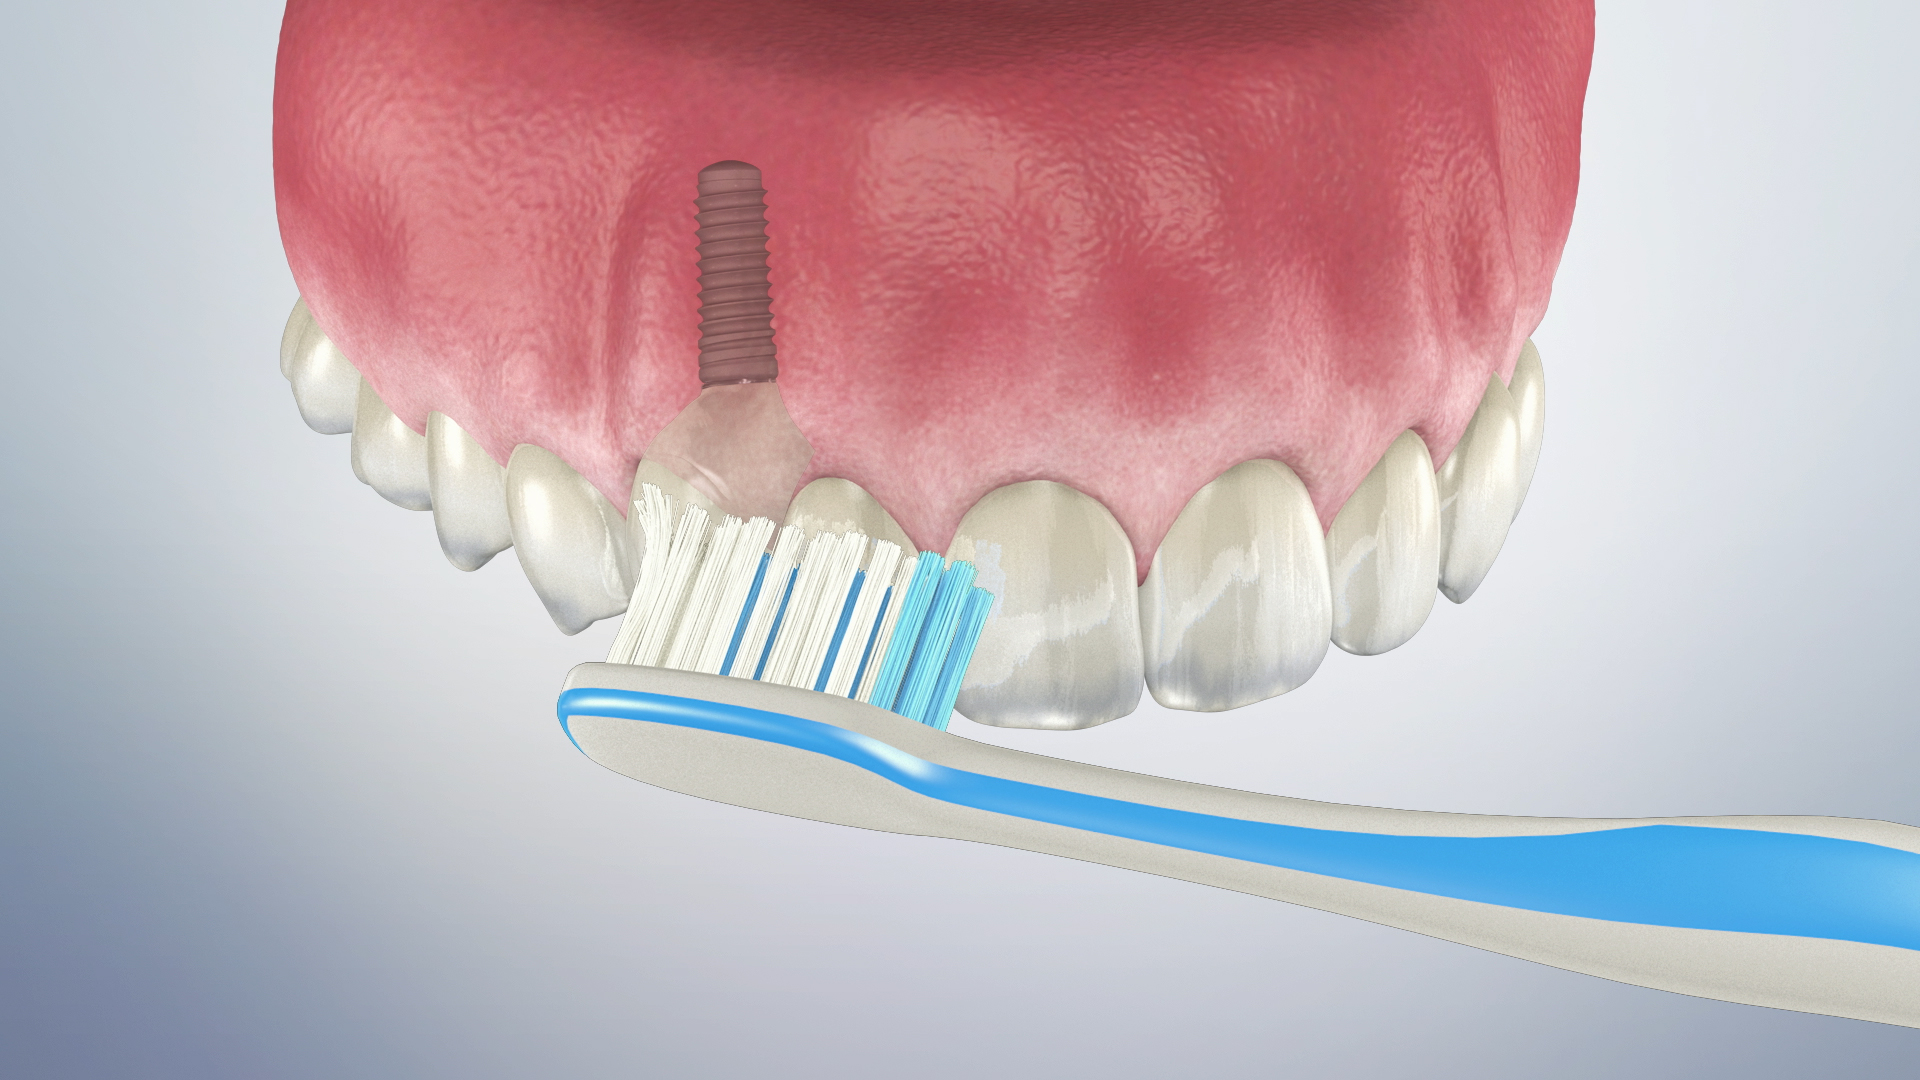 Thumbnail for a video on Caring for a Dental Implant